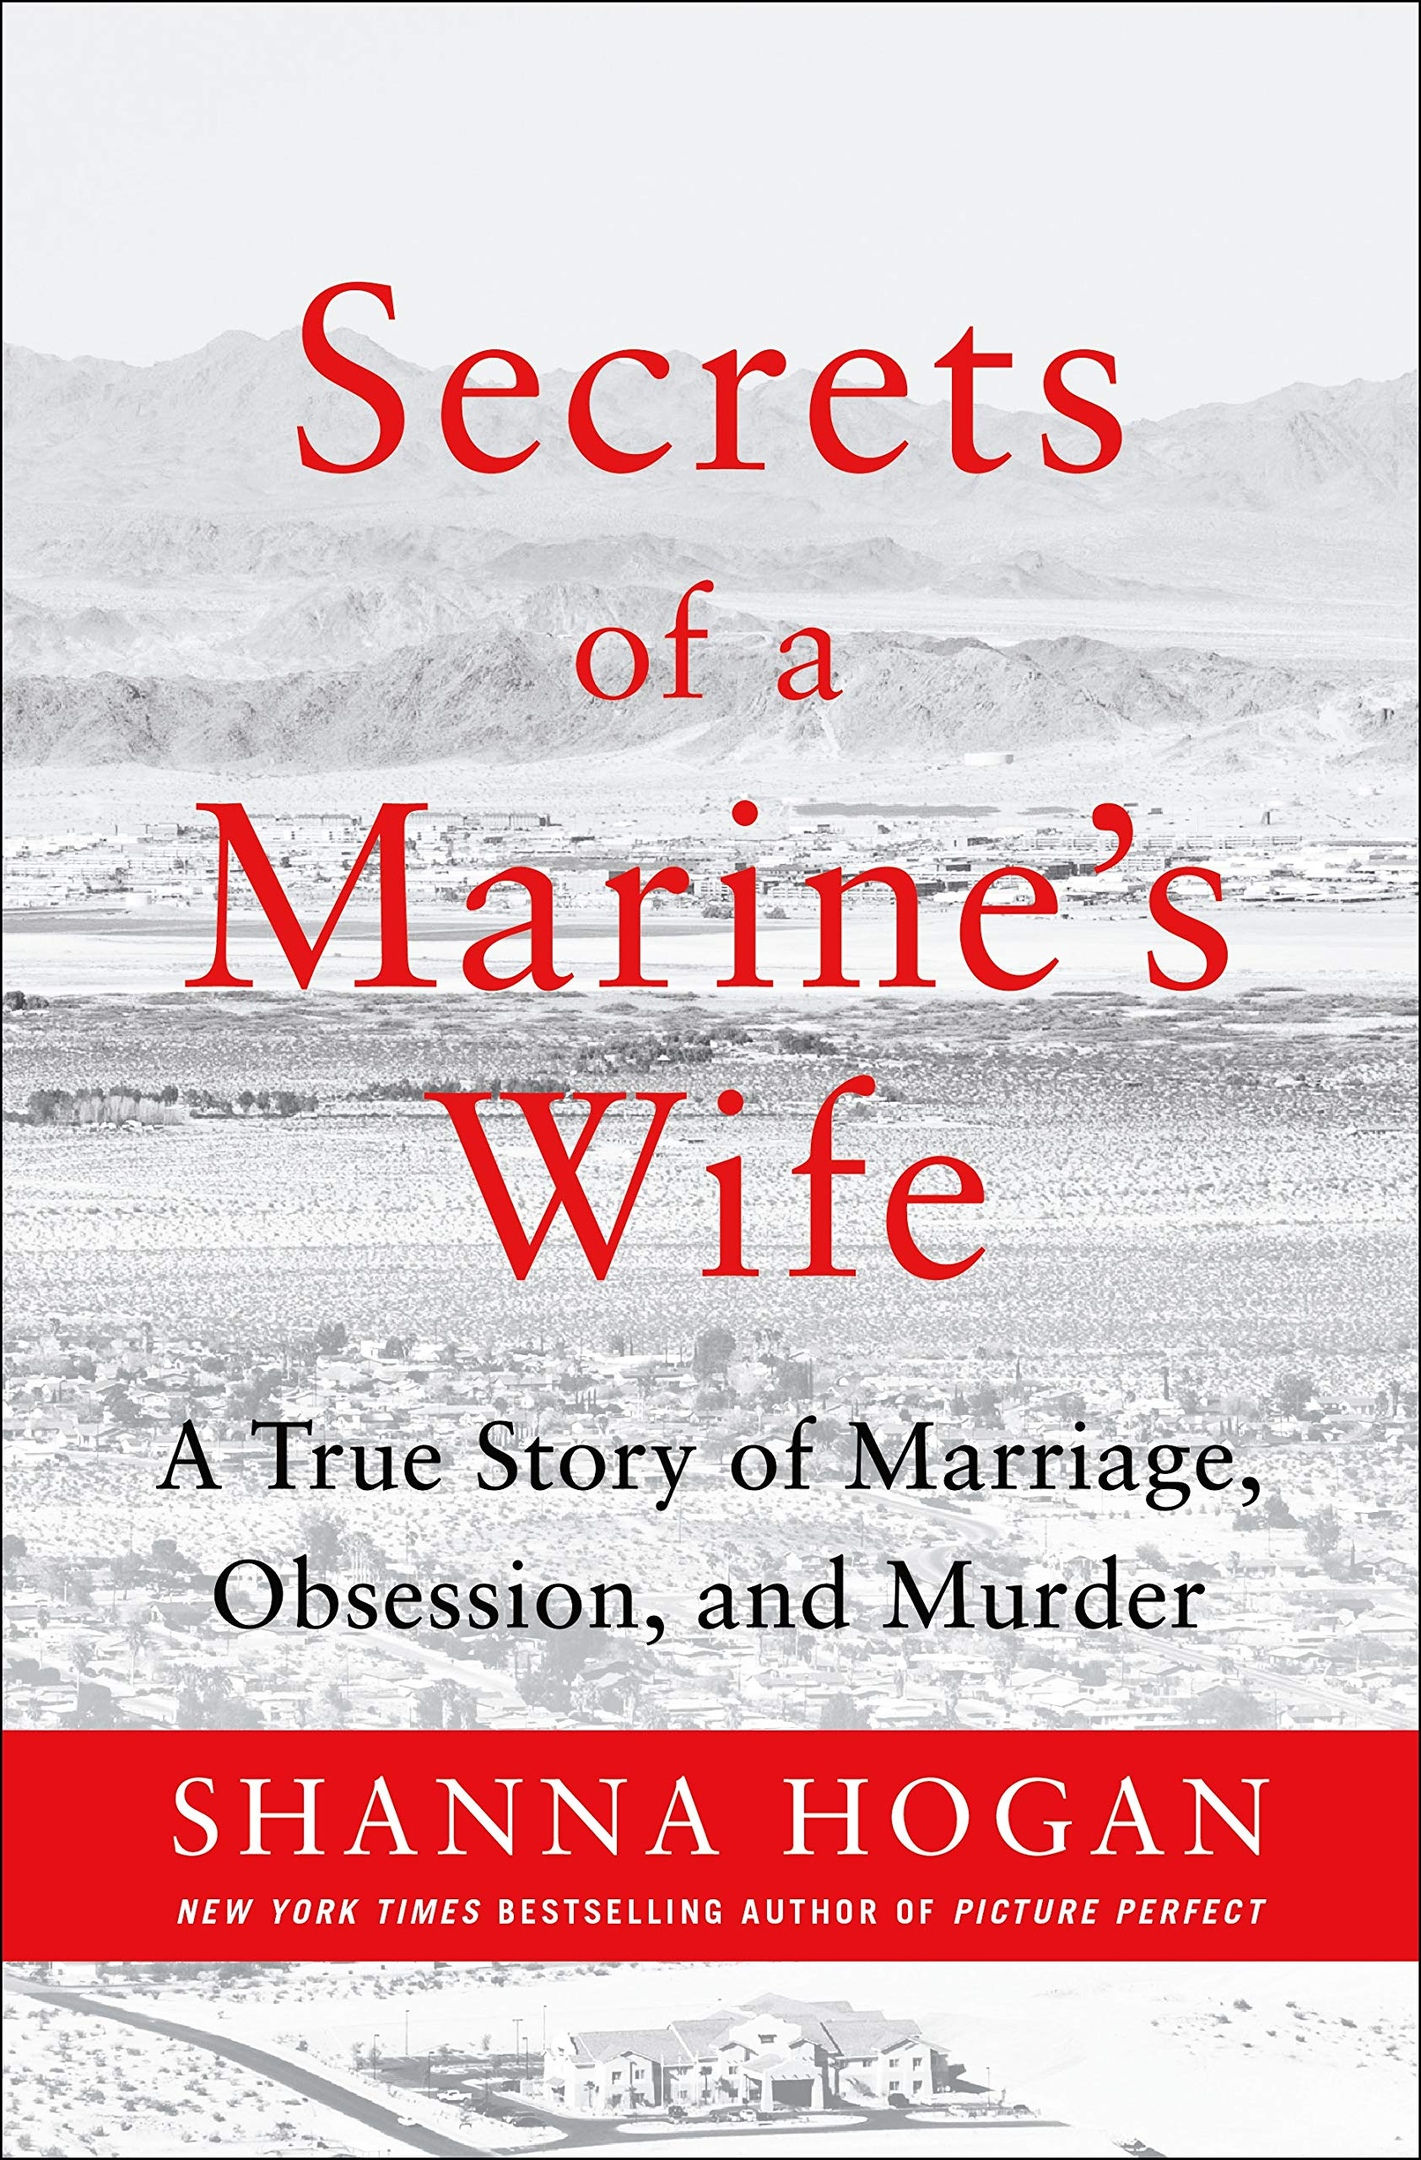 Shanna Hogan – Secrets Of A Marine's